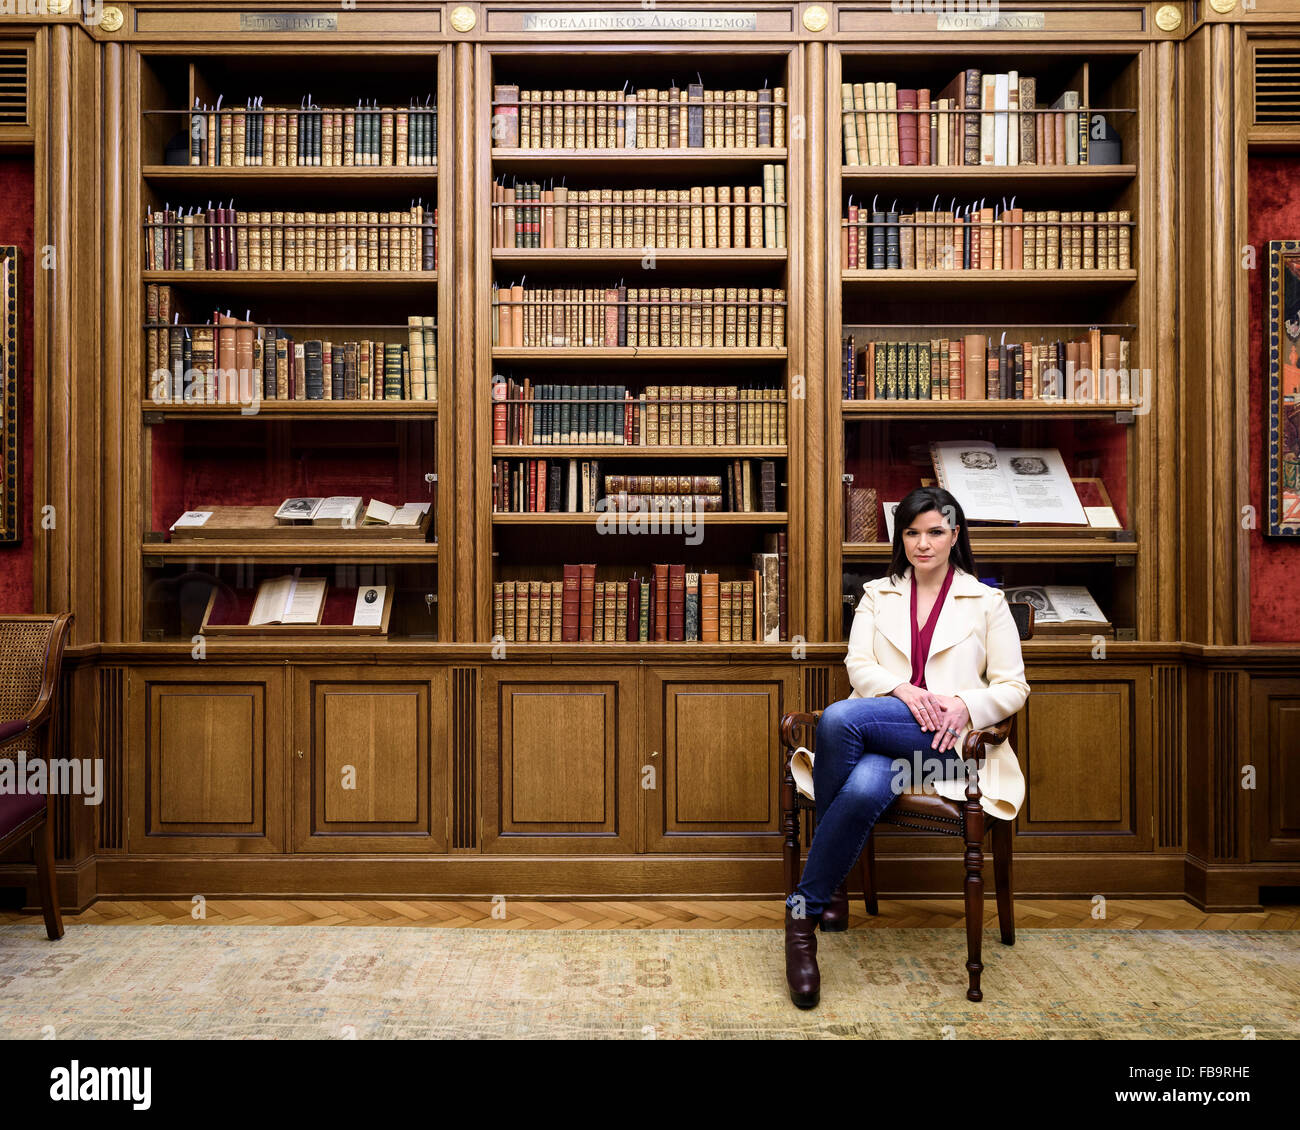 Aphrodite Panagiotakou, Vice-Director of the Onassis Cultural Center in the Hellenic Library. Institutions of Athens, Stock Photo